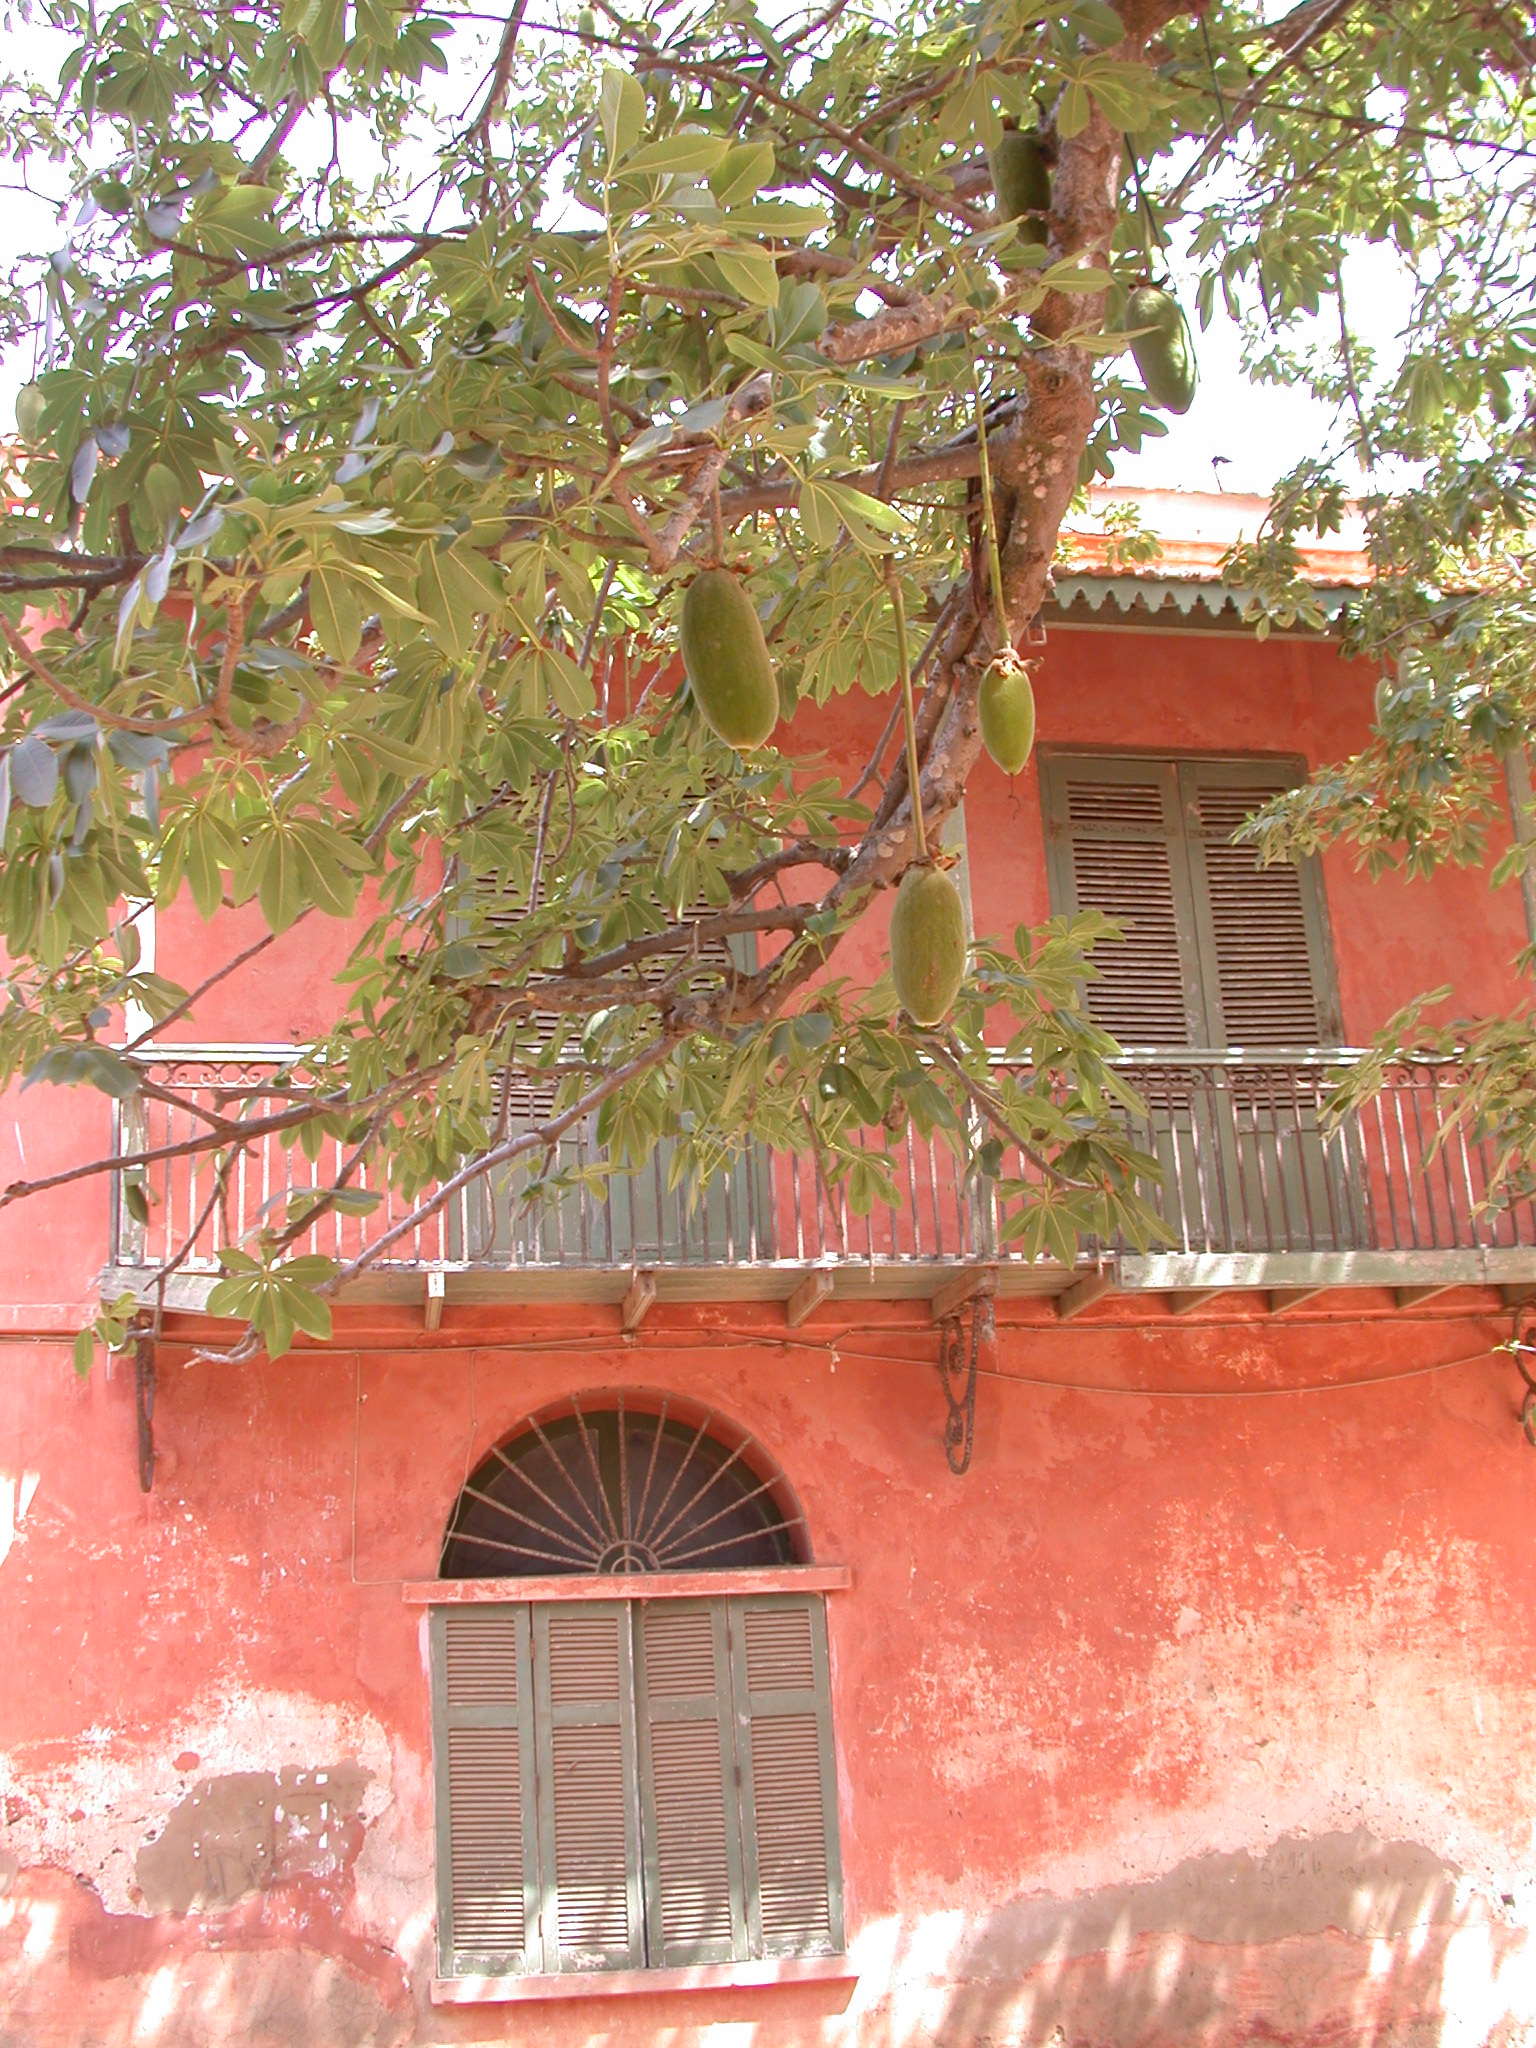 Jackfruits in Front of Colorful Old House, Ile de Goree, Dakar, Senegal